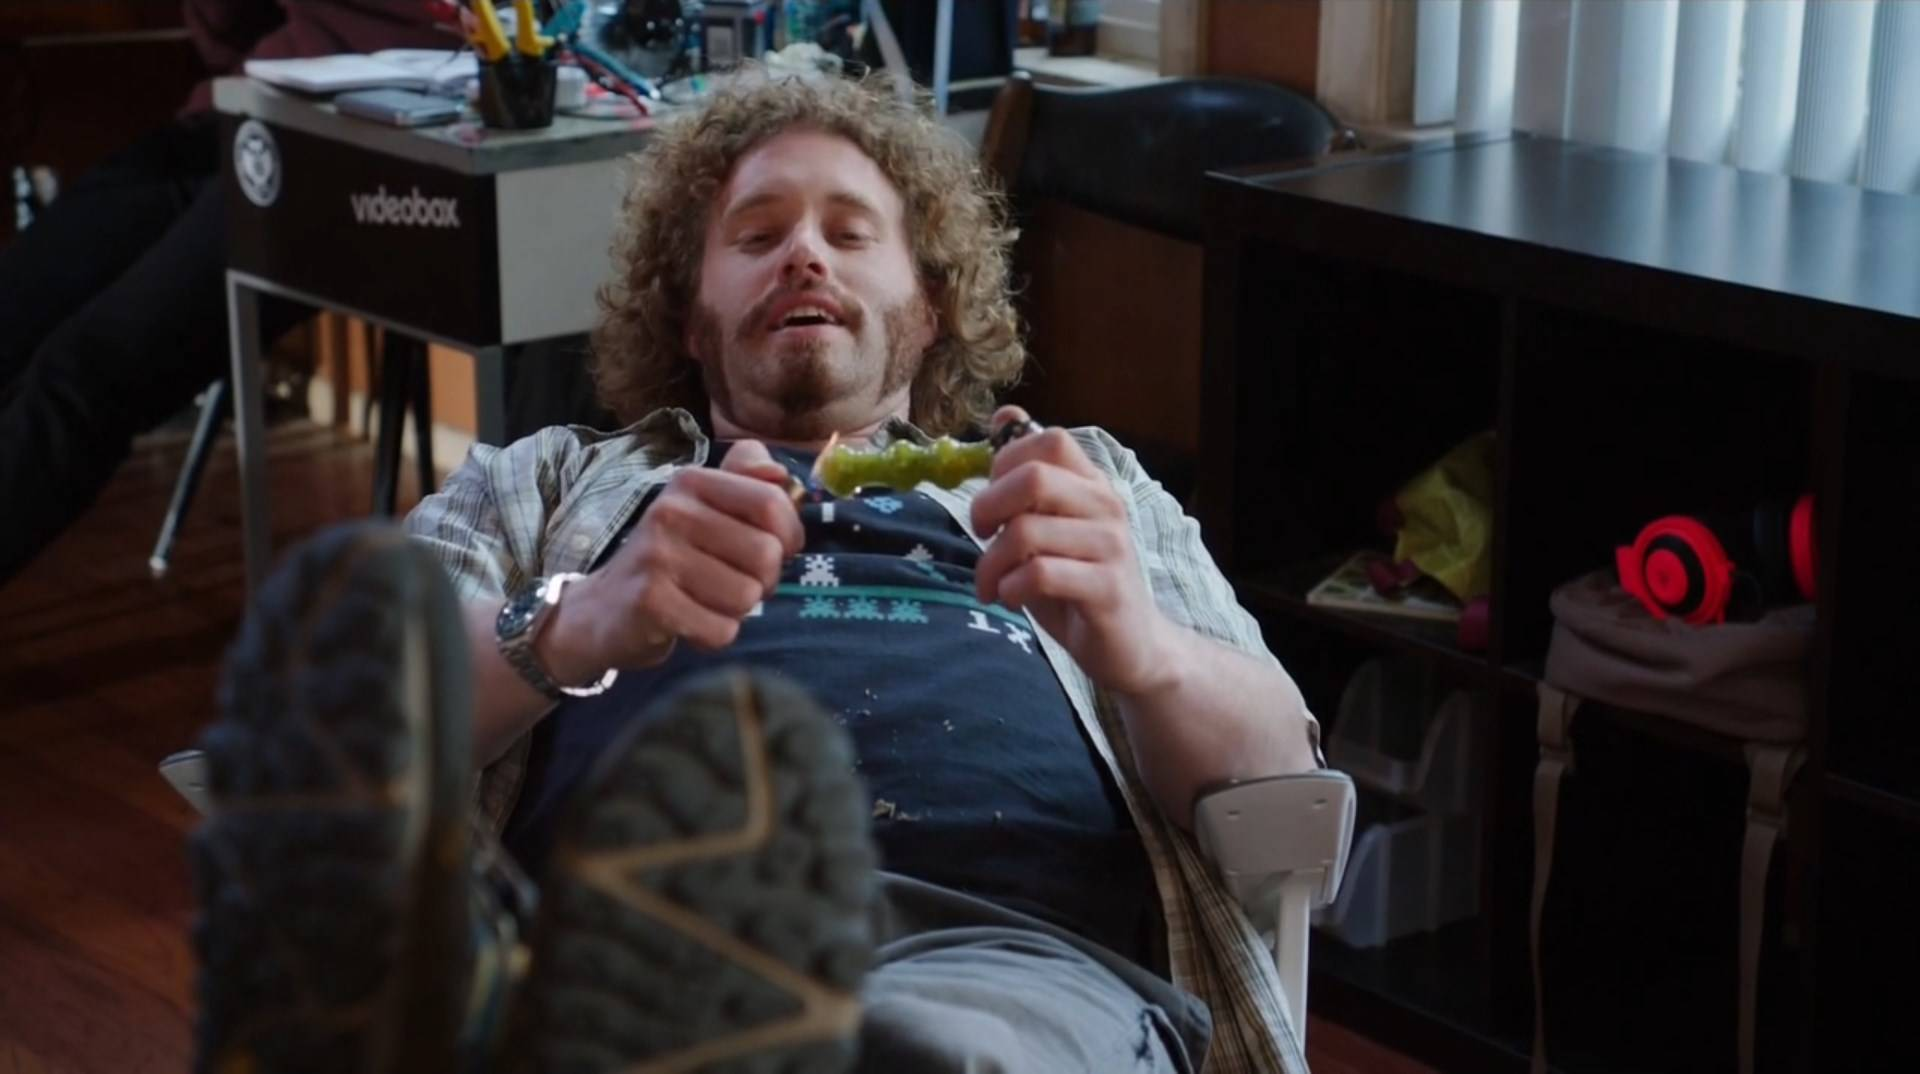 Clip from HBO show Silicon Valley of man smoking a DopeBoo glass pipe